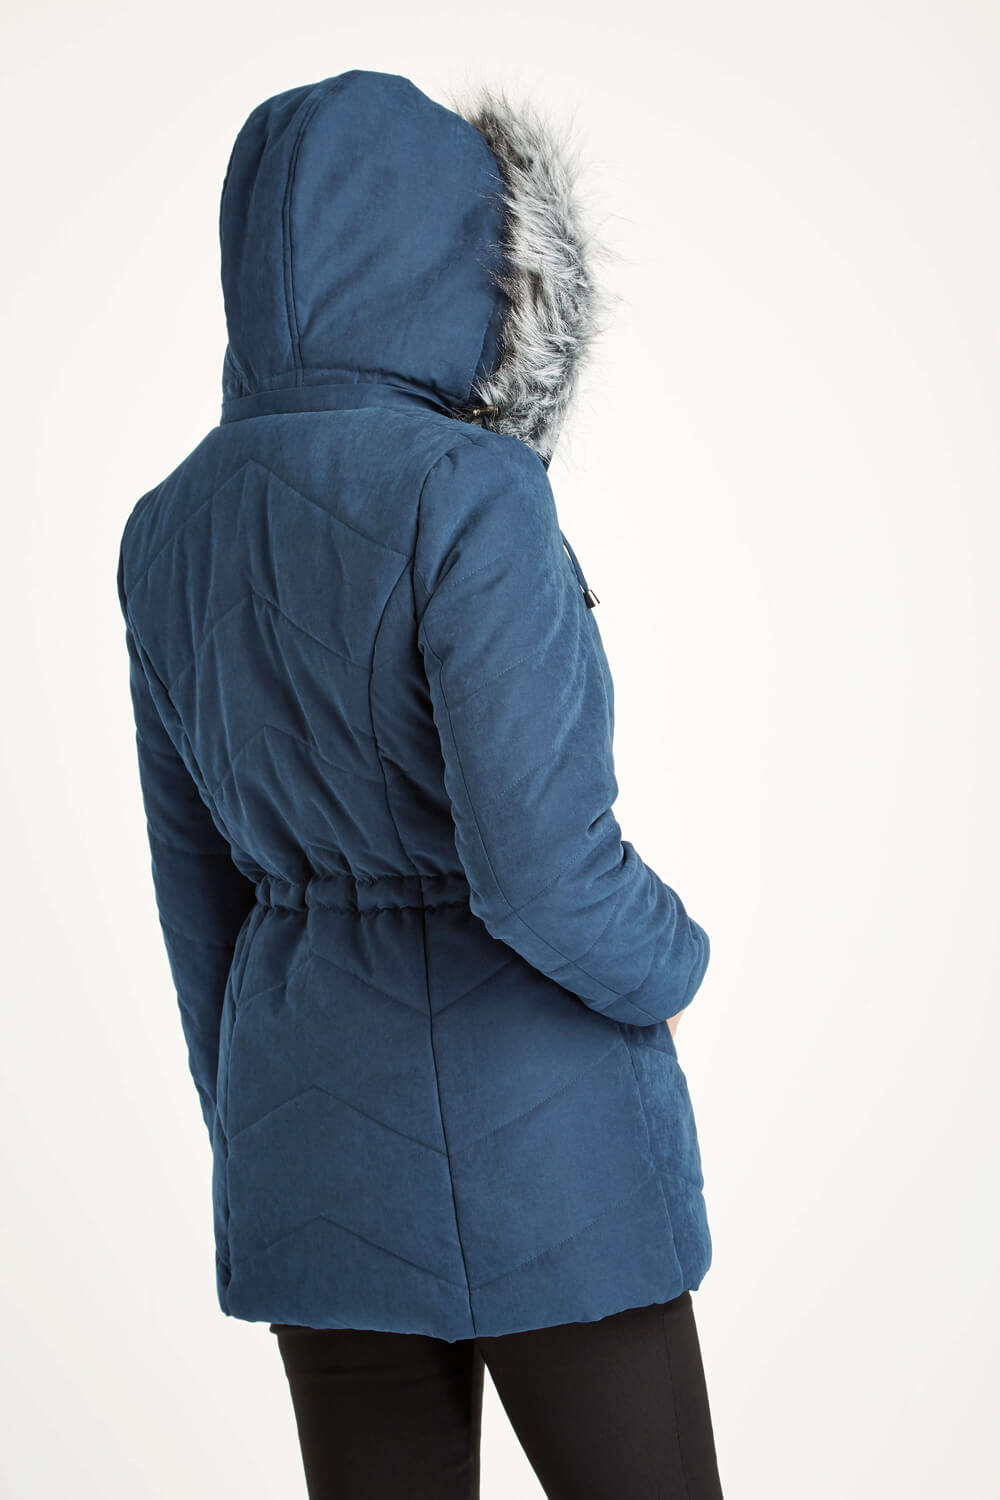 Roman-Originals-Women-039-s-Blue-Quilted-Parka-Coat-with-Hood-Sizes-10-20 thumbnail 18